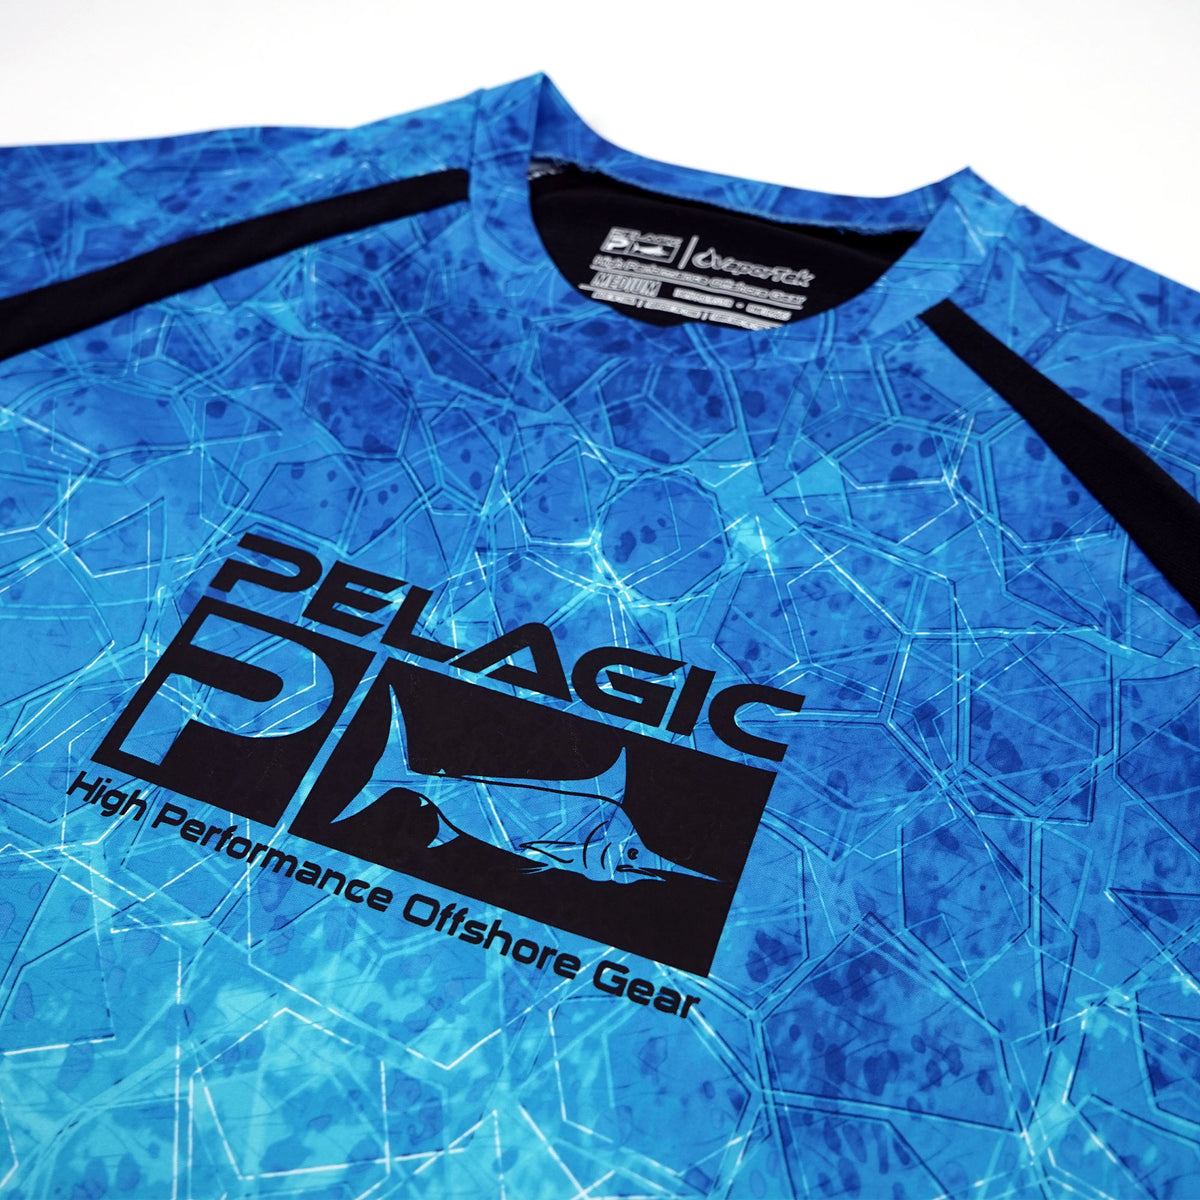 Vaportek Long Sleeve Performance Shirt Big Image - 5